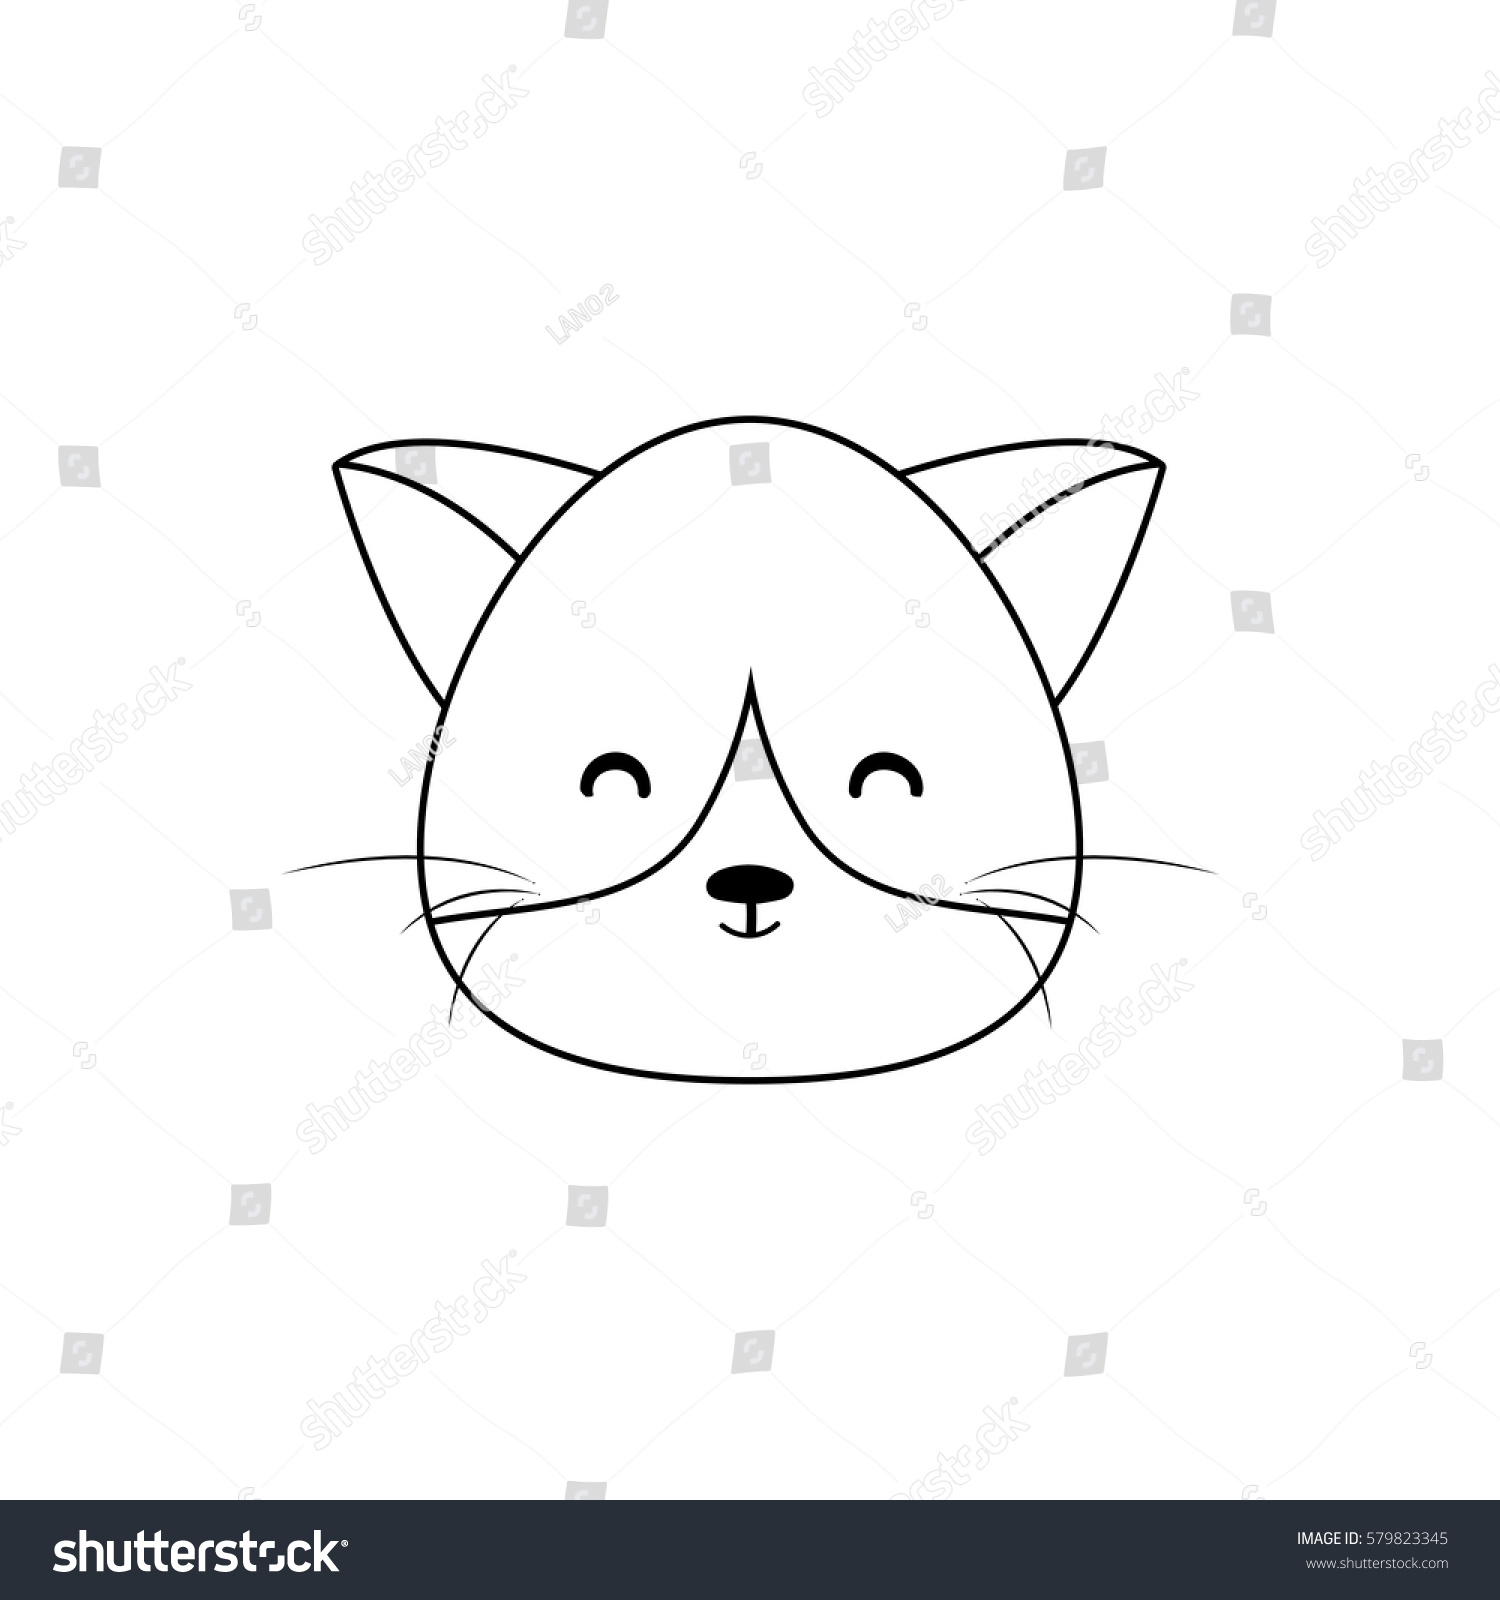 Uncategorized Cat Drawing Face cat drawing face stock vector 579823345 shutterstock face